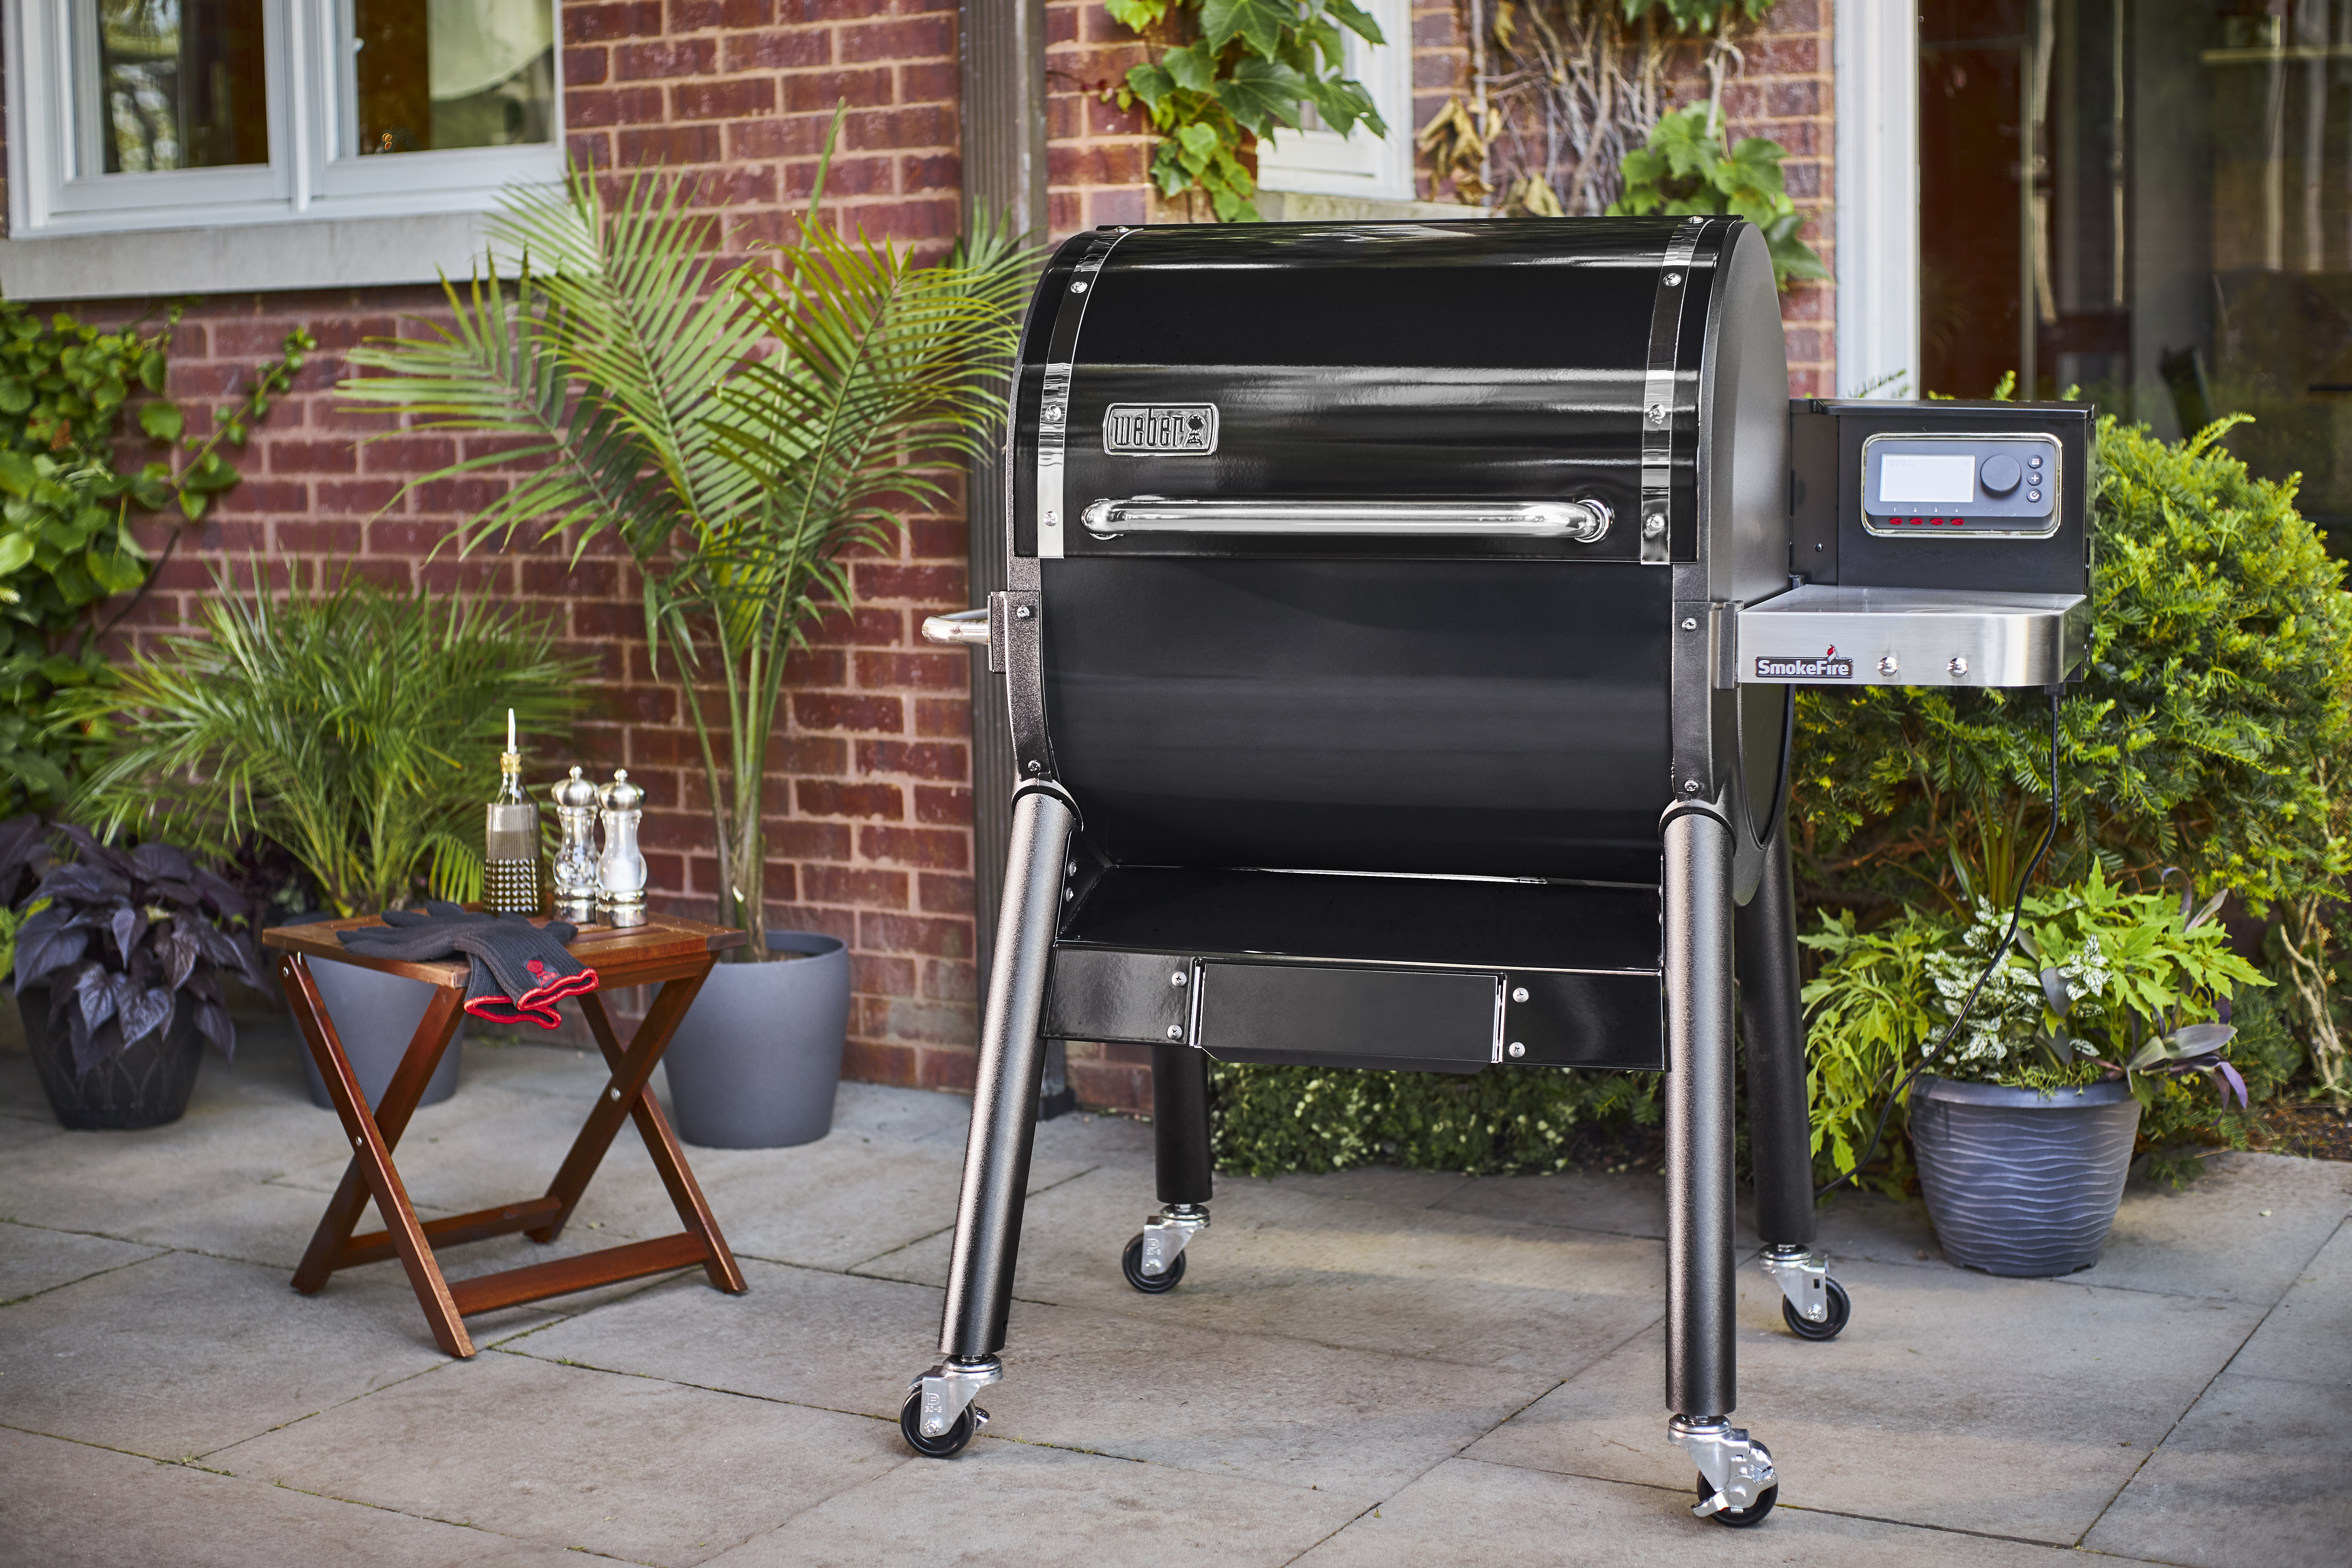 Weber S New Smokefire Pellet Grill Uses June Technology For Smart Cooking Techcrunch